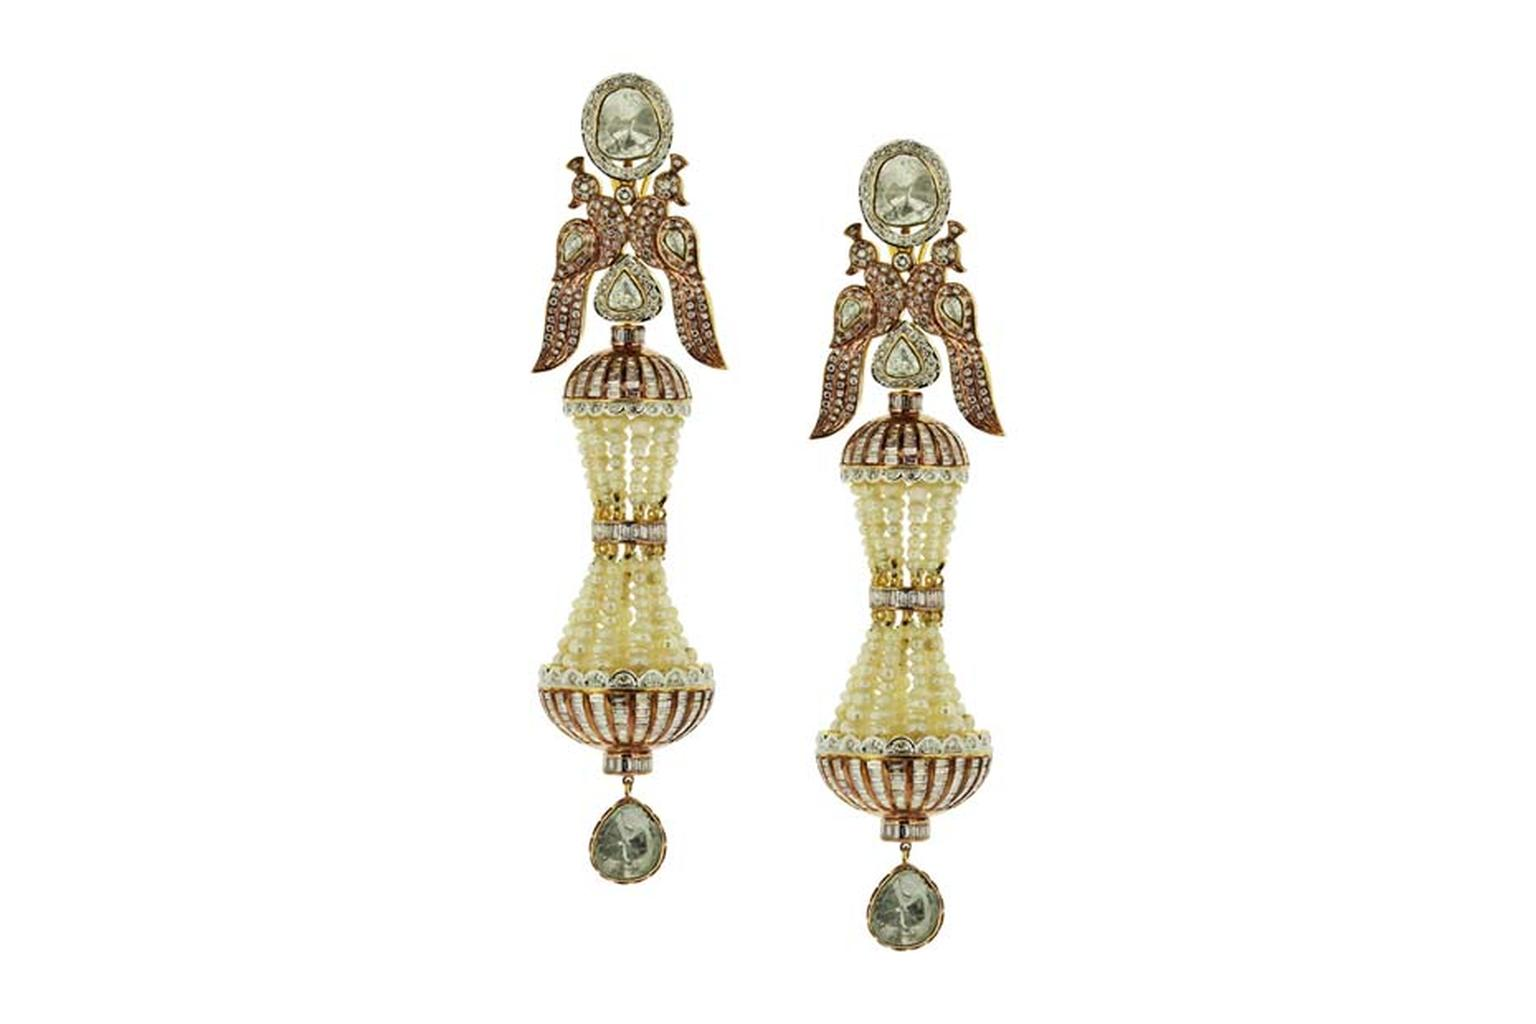 Birdhichand Ghanshyamdas Aks collection Peacock earrings inspired by minarets, featuring studded pearls and uncut and brilliant-cut diamonds.